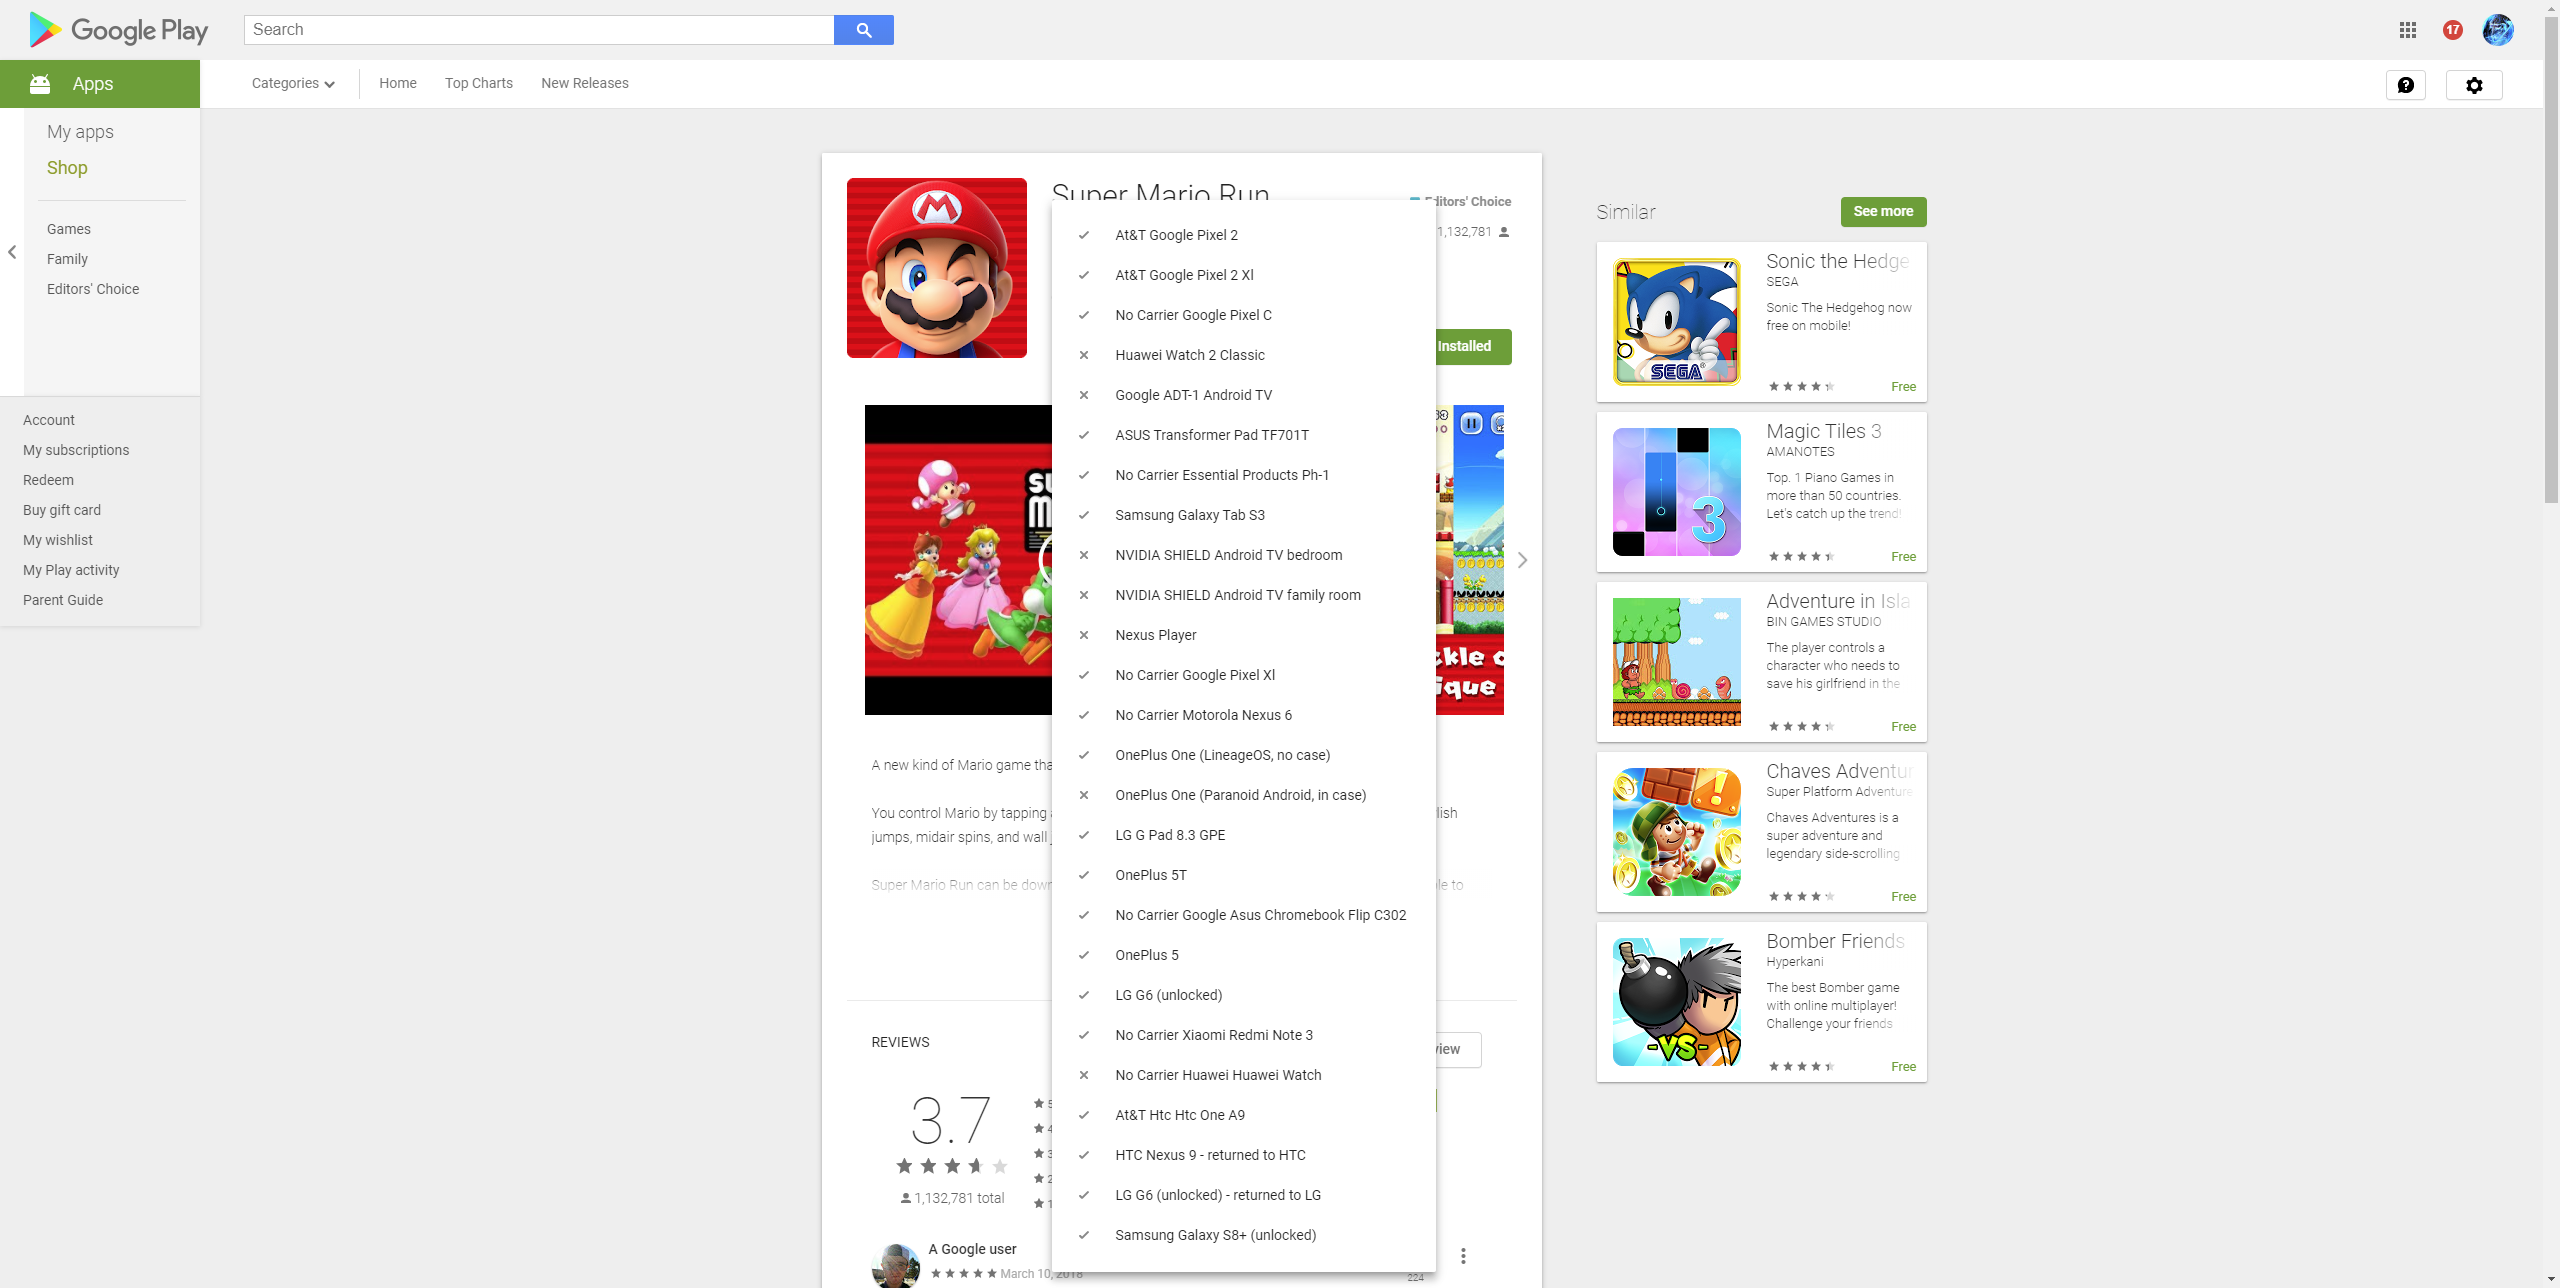 Update: More details] Google is rolling out a new web Play